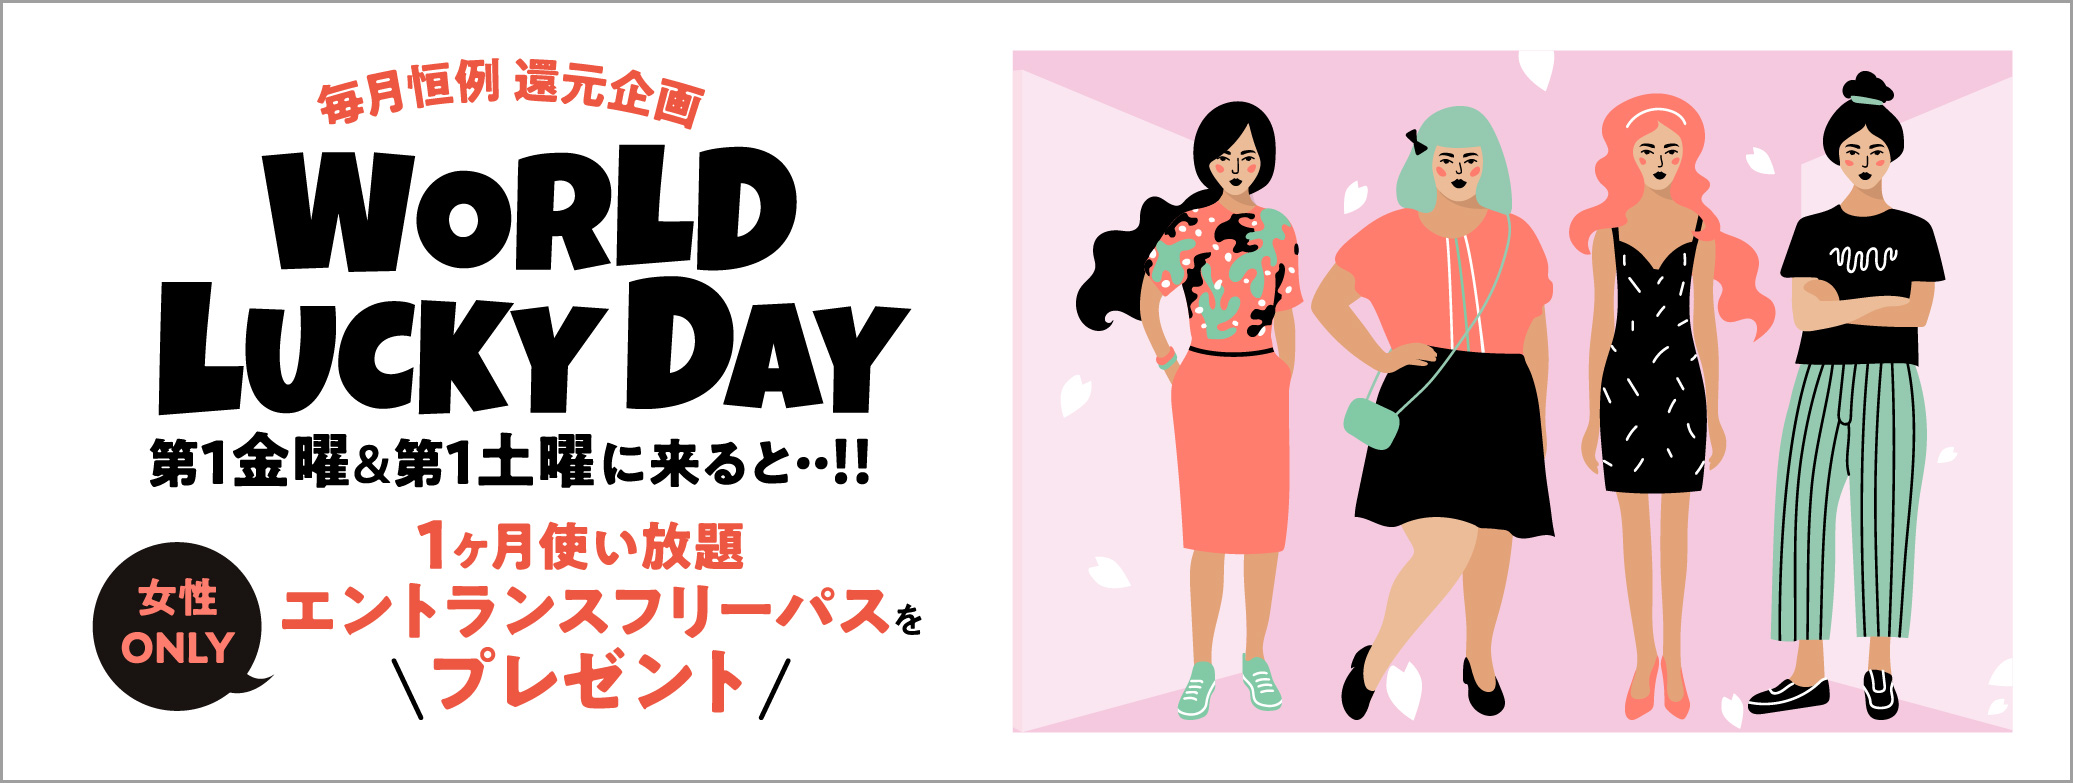 WORLD LUCKY DAY